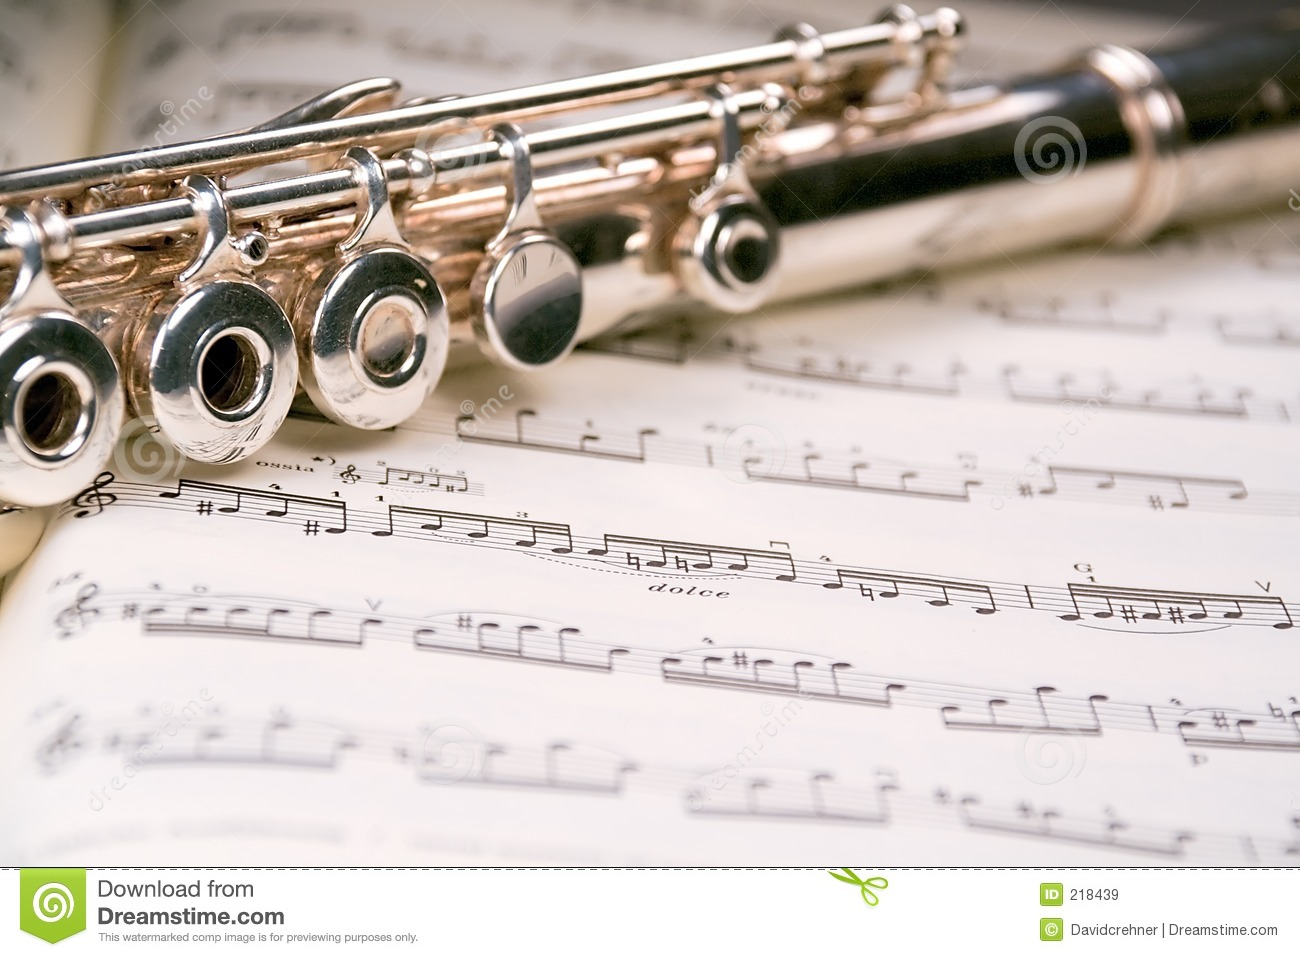 Flute across a musical score royalty free stock images image 218439